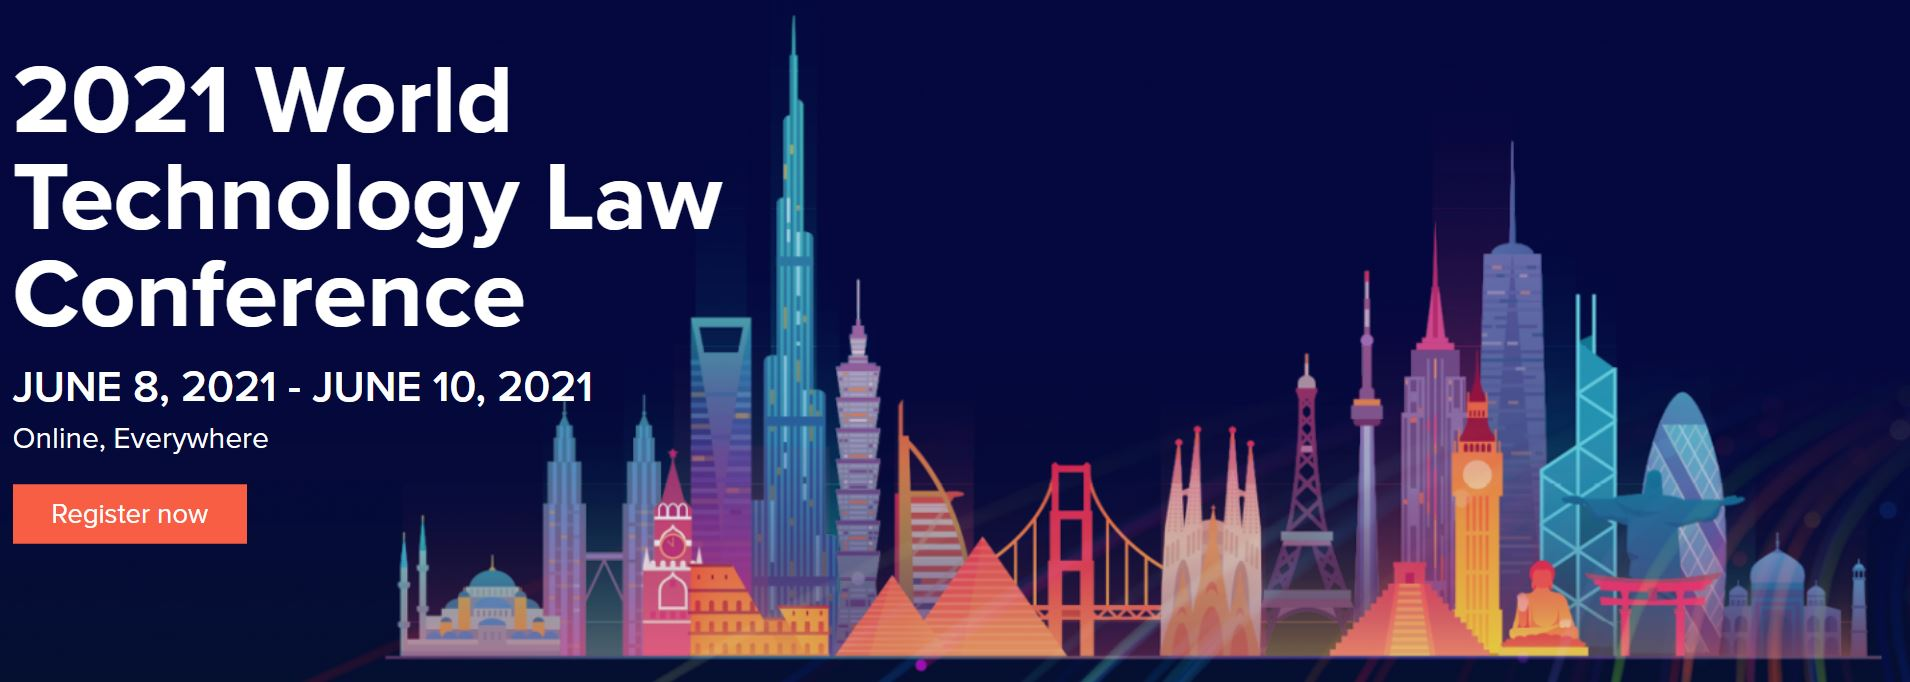 TCI Rechtsanwälte ist Gold Plus Sponsor der 2021 World Technology Law Conference